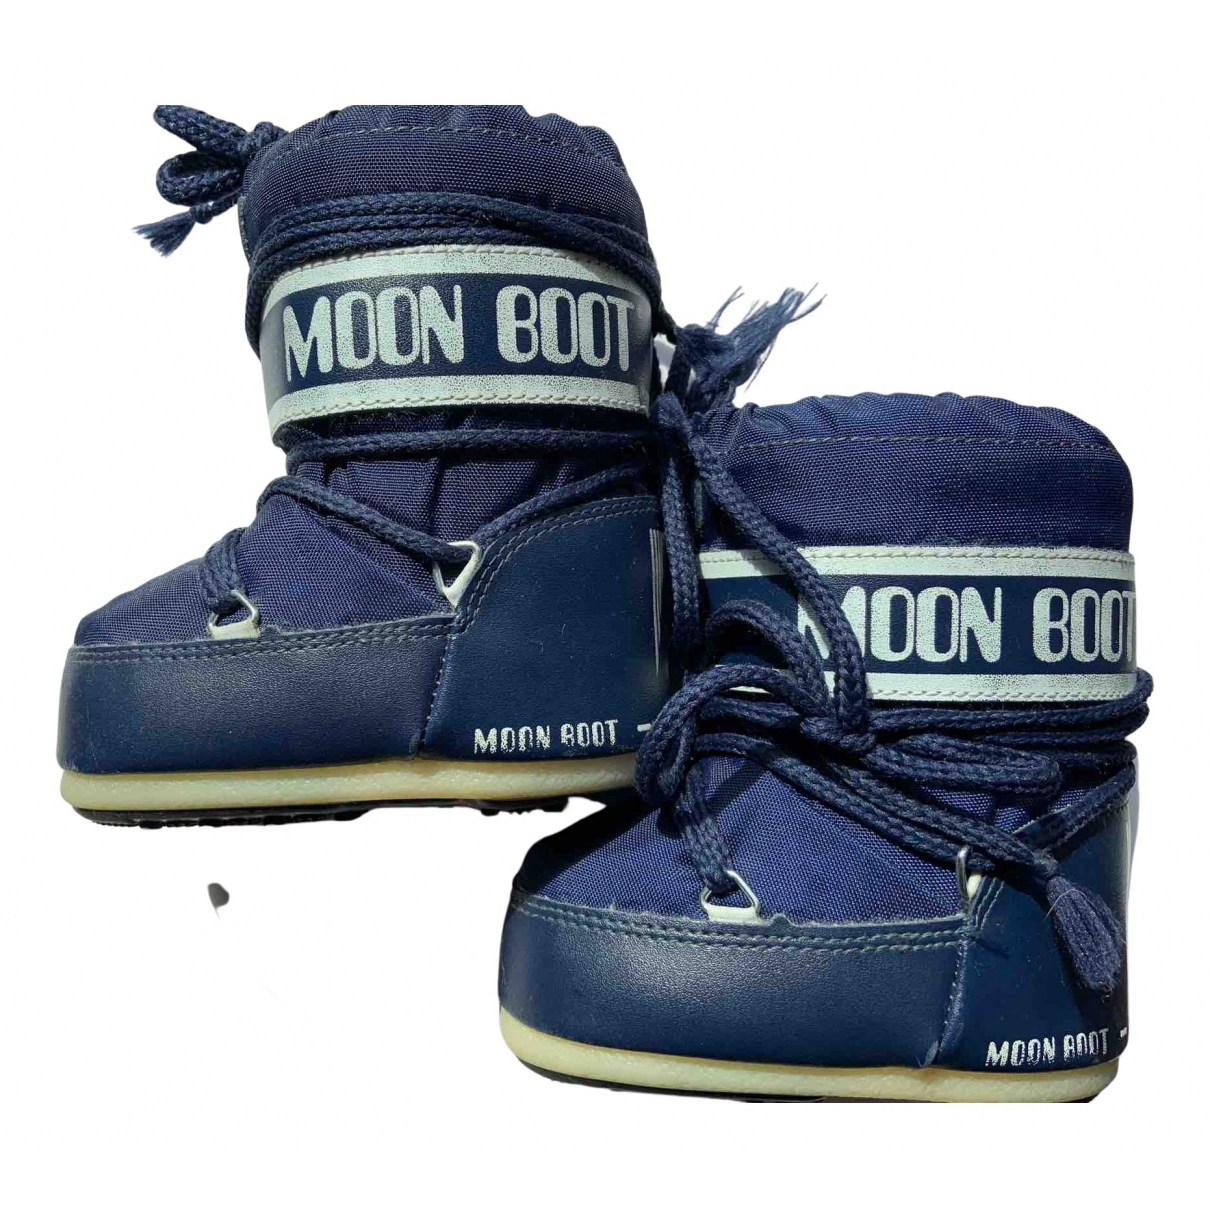 Moon Boot N Navy Boots for Kids 20 FR